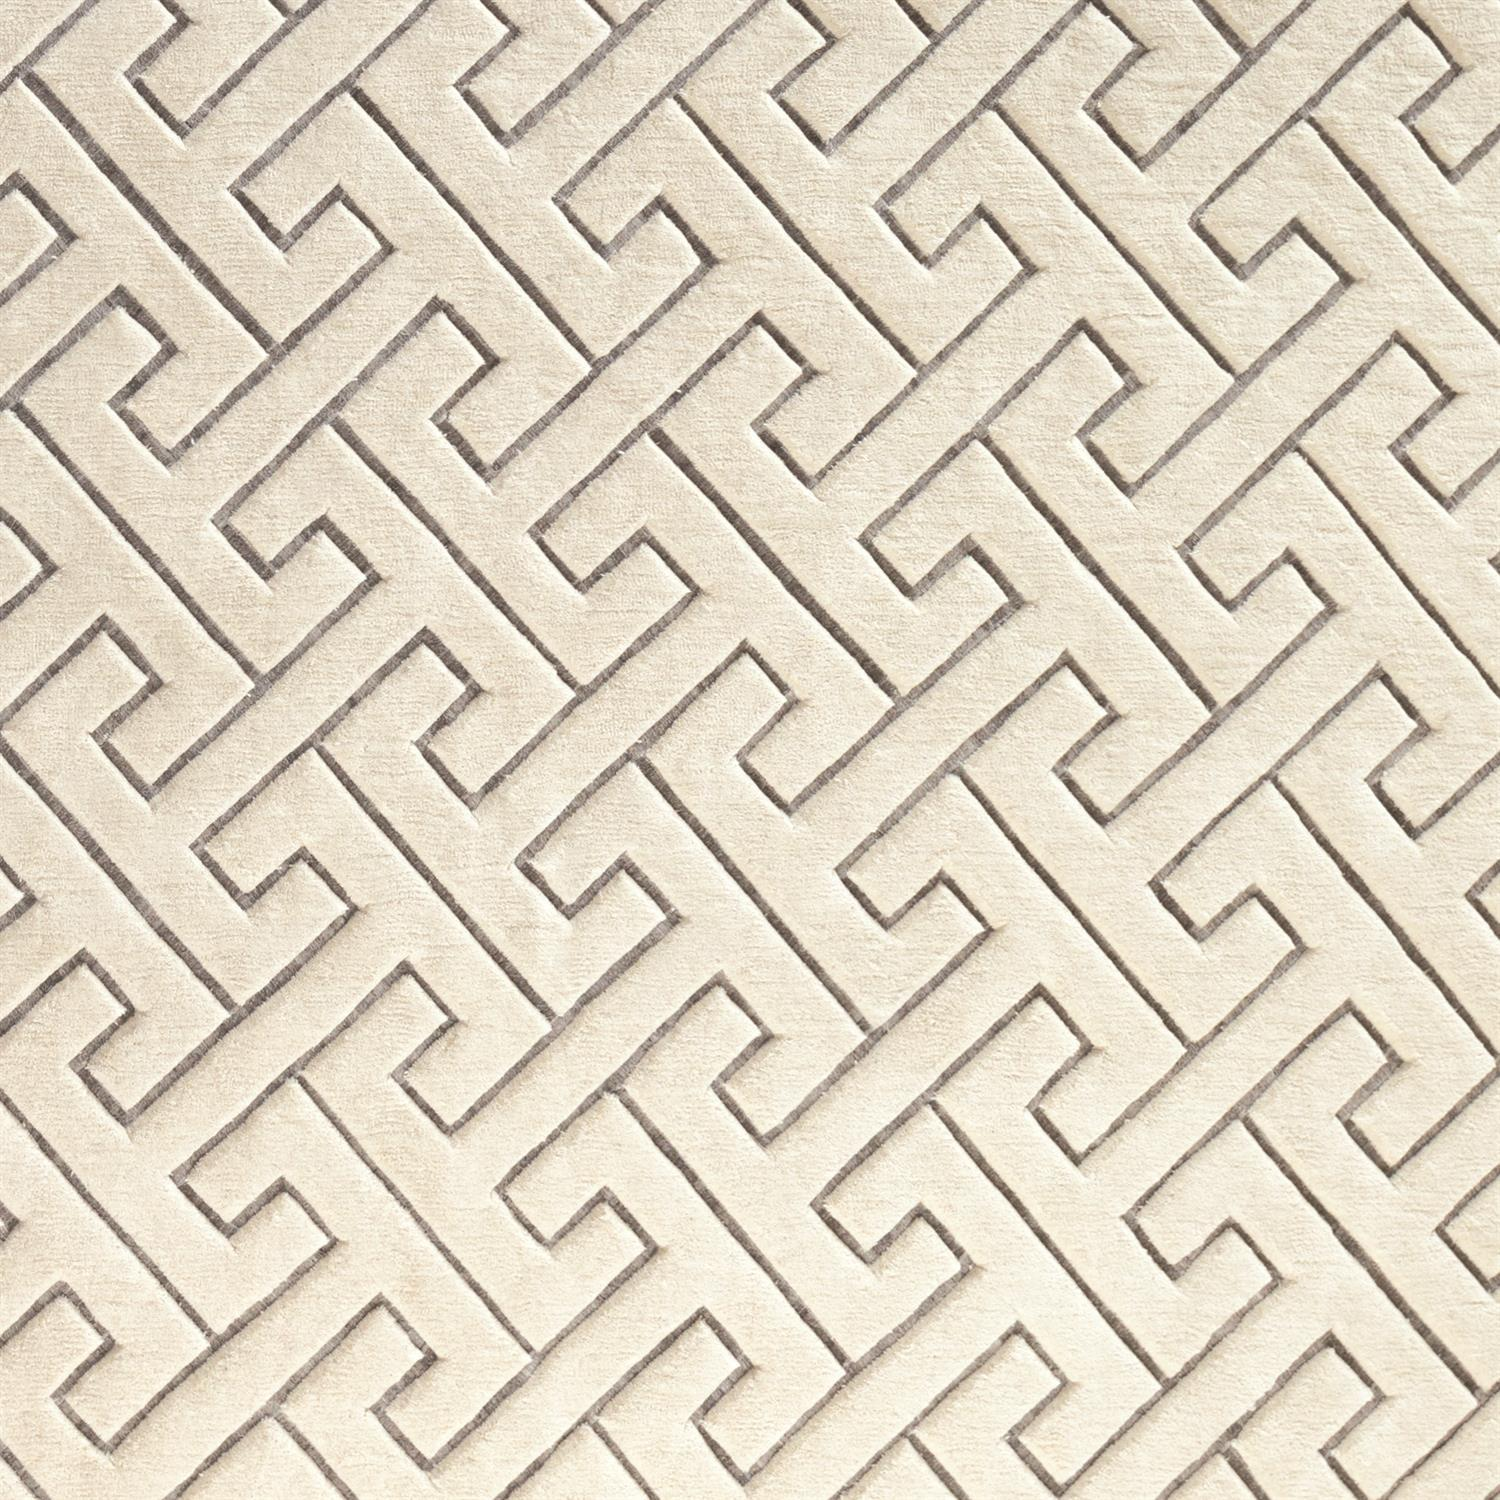 Global Views Tessellating Rug-Ivory/Grey-9' x 12'